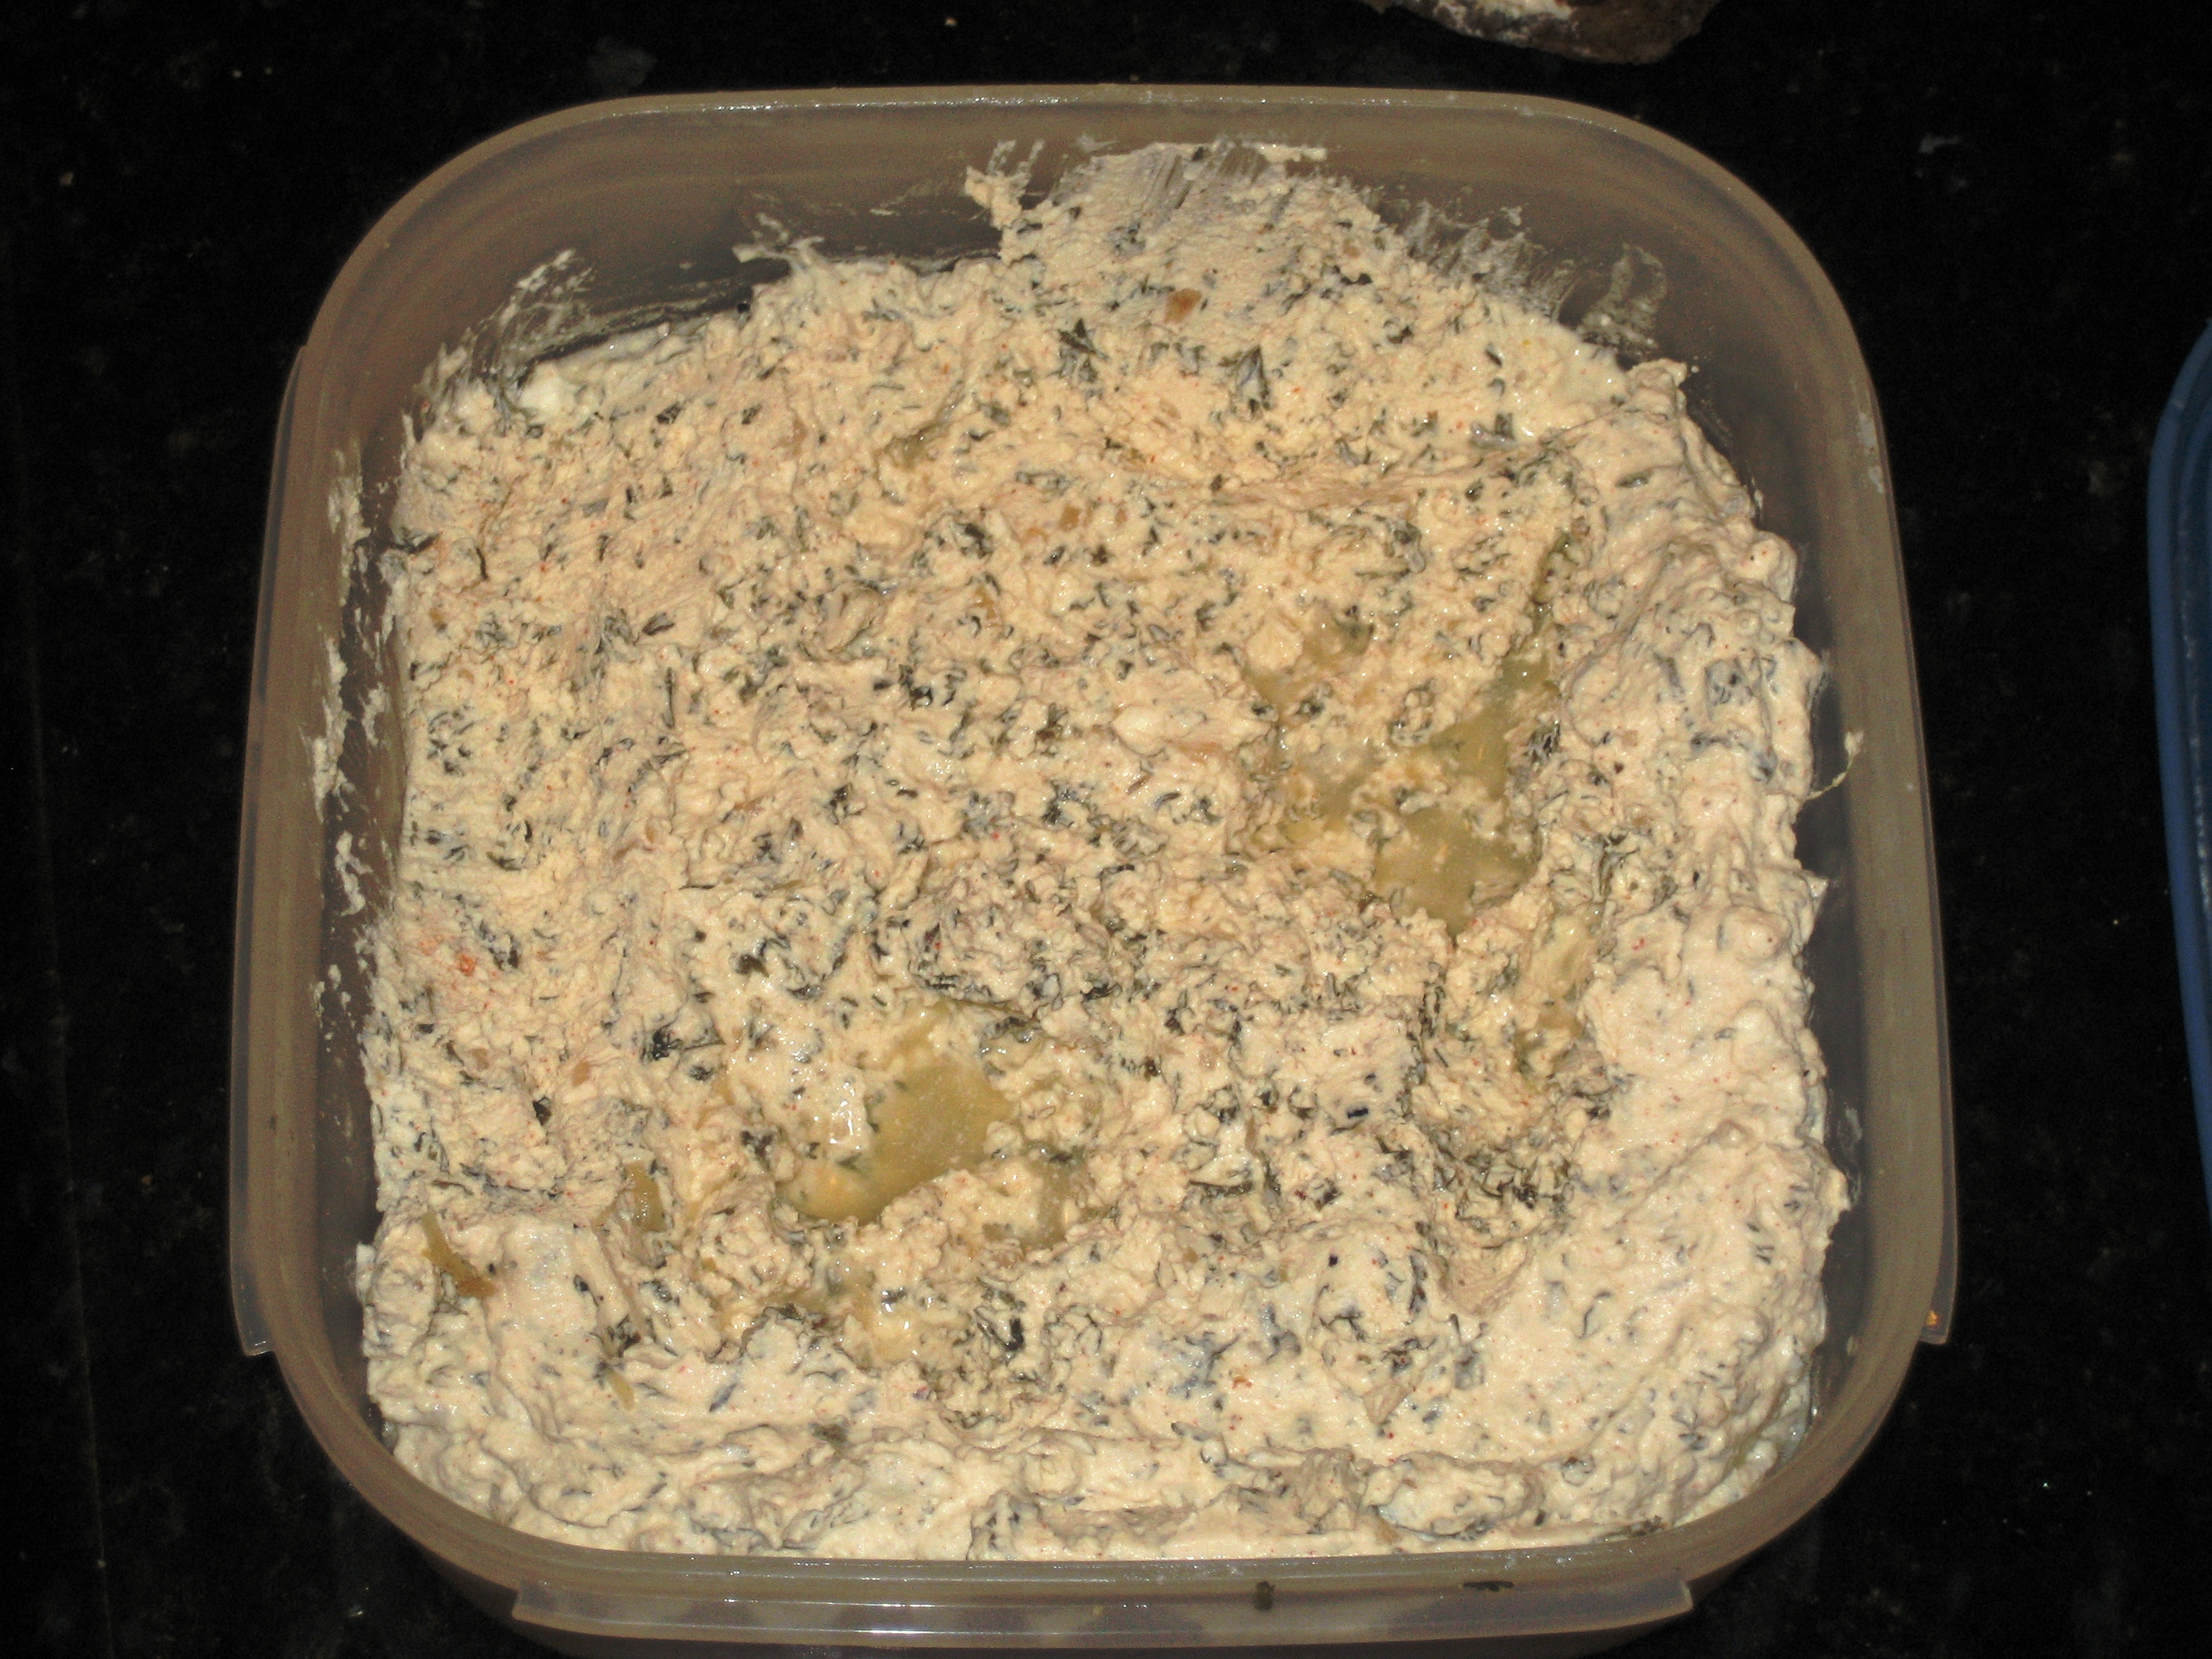 Cream Cheese using Half & Half with herbs, 5 days old, small amount of whey.